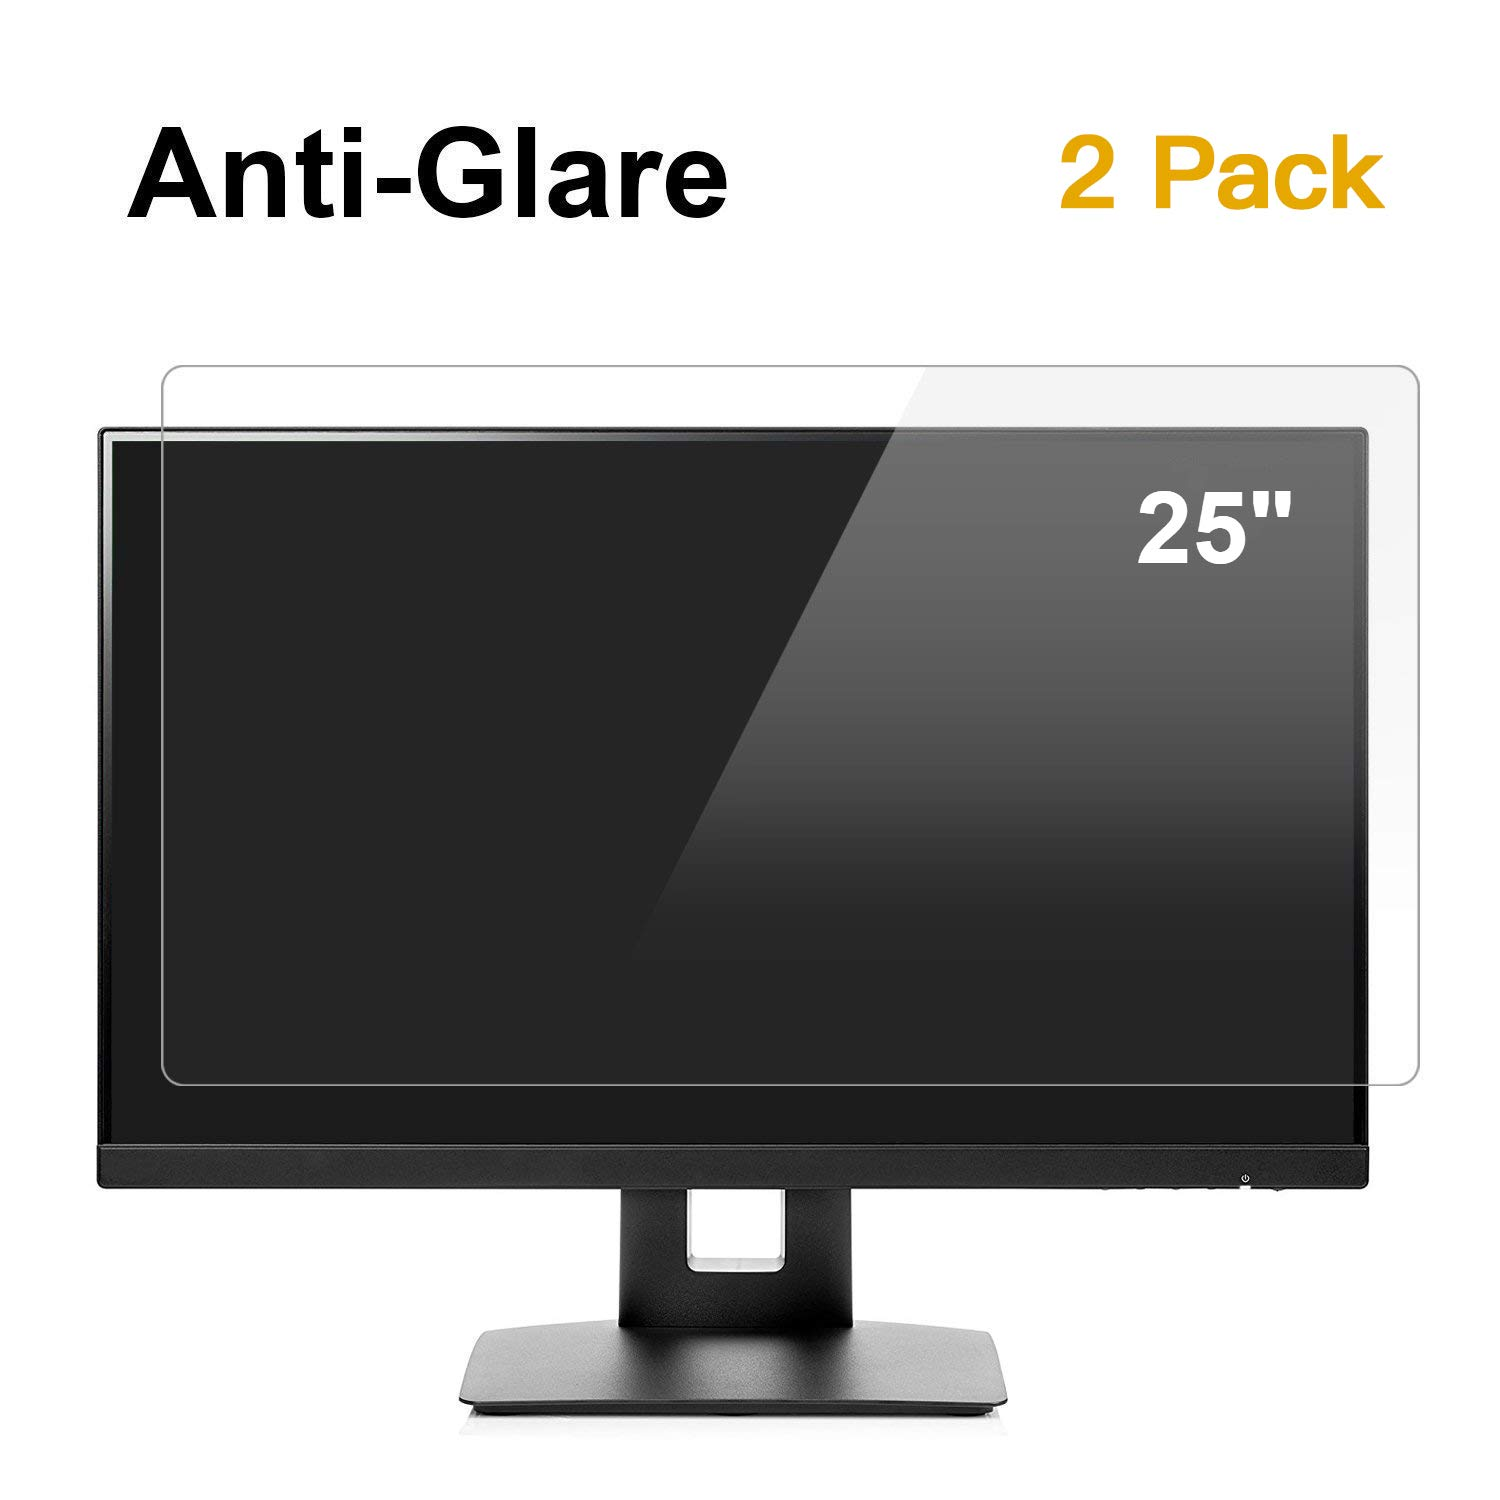 [2 Pack] 25 inch Anti Glare(Matte) Screen Protector Compatible for All Brands of 25'' Widescreen Desktop with 16:9 Aspect Ratio Monitor [!!!Not for 16:10 Aspect Ratio Monitor] by FORITO